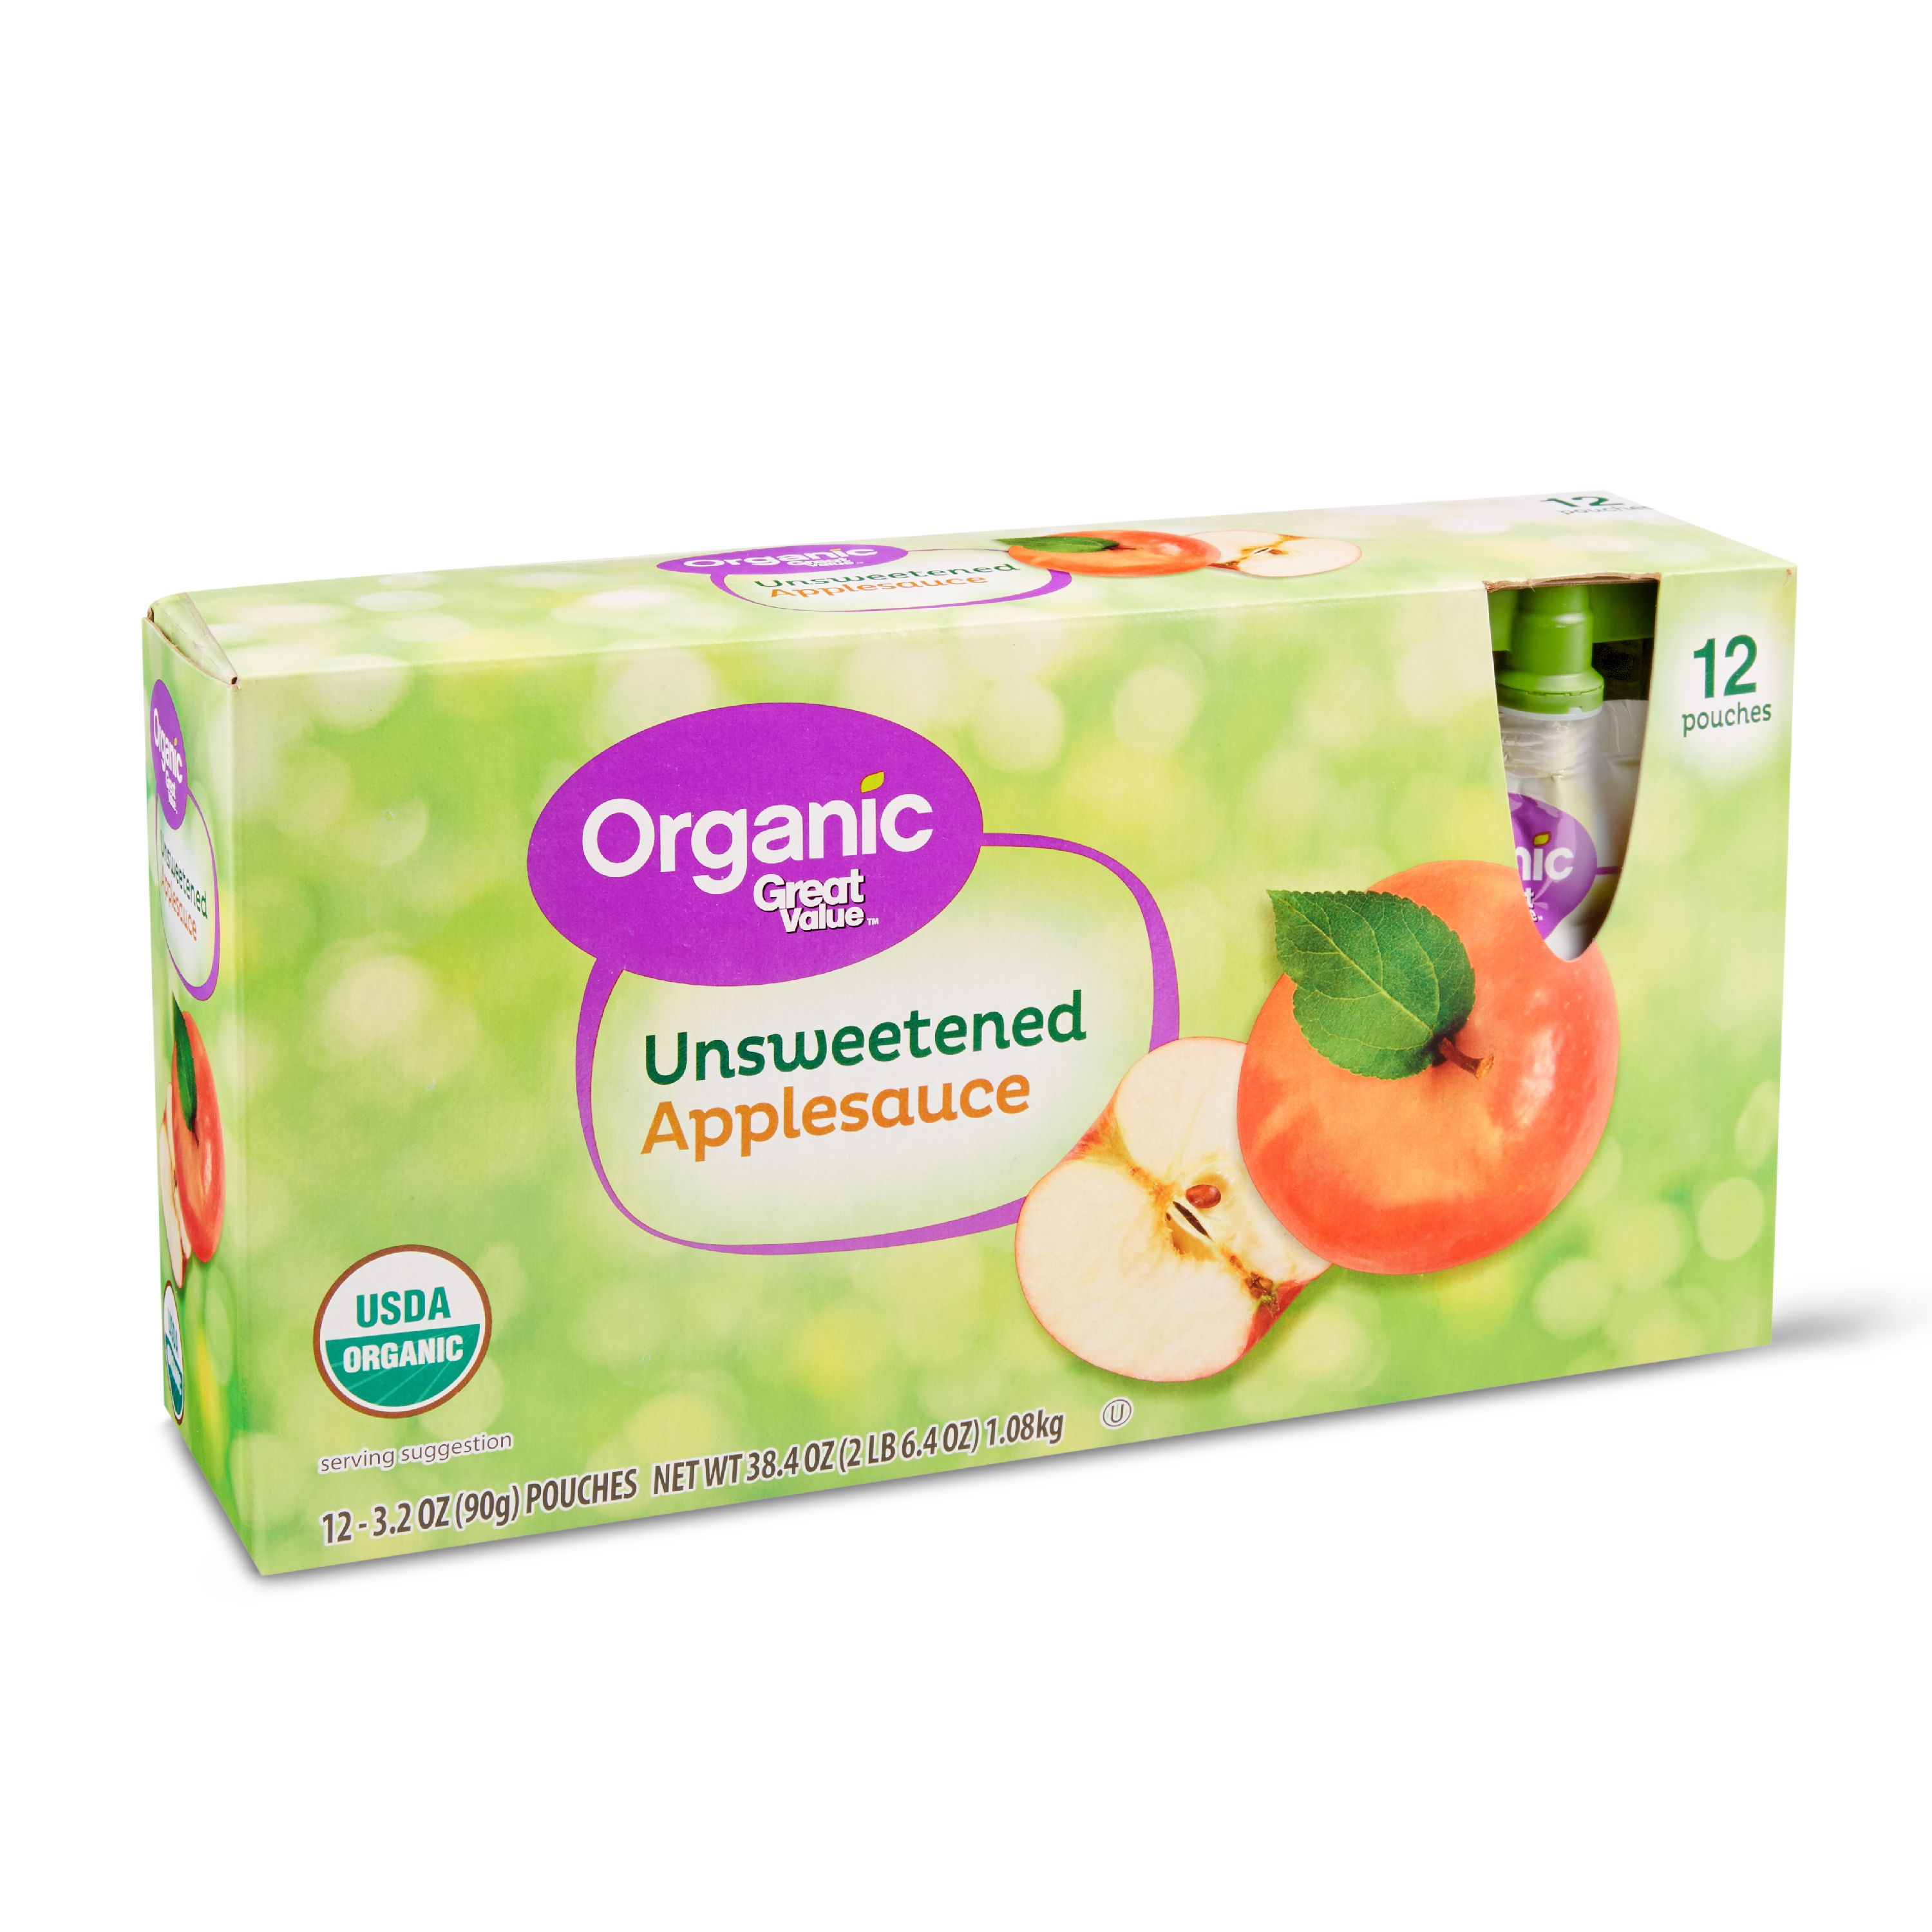 Great Value Organic Applesauce Pouches, Unsweetened, 3.2 oz, 12 Count